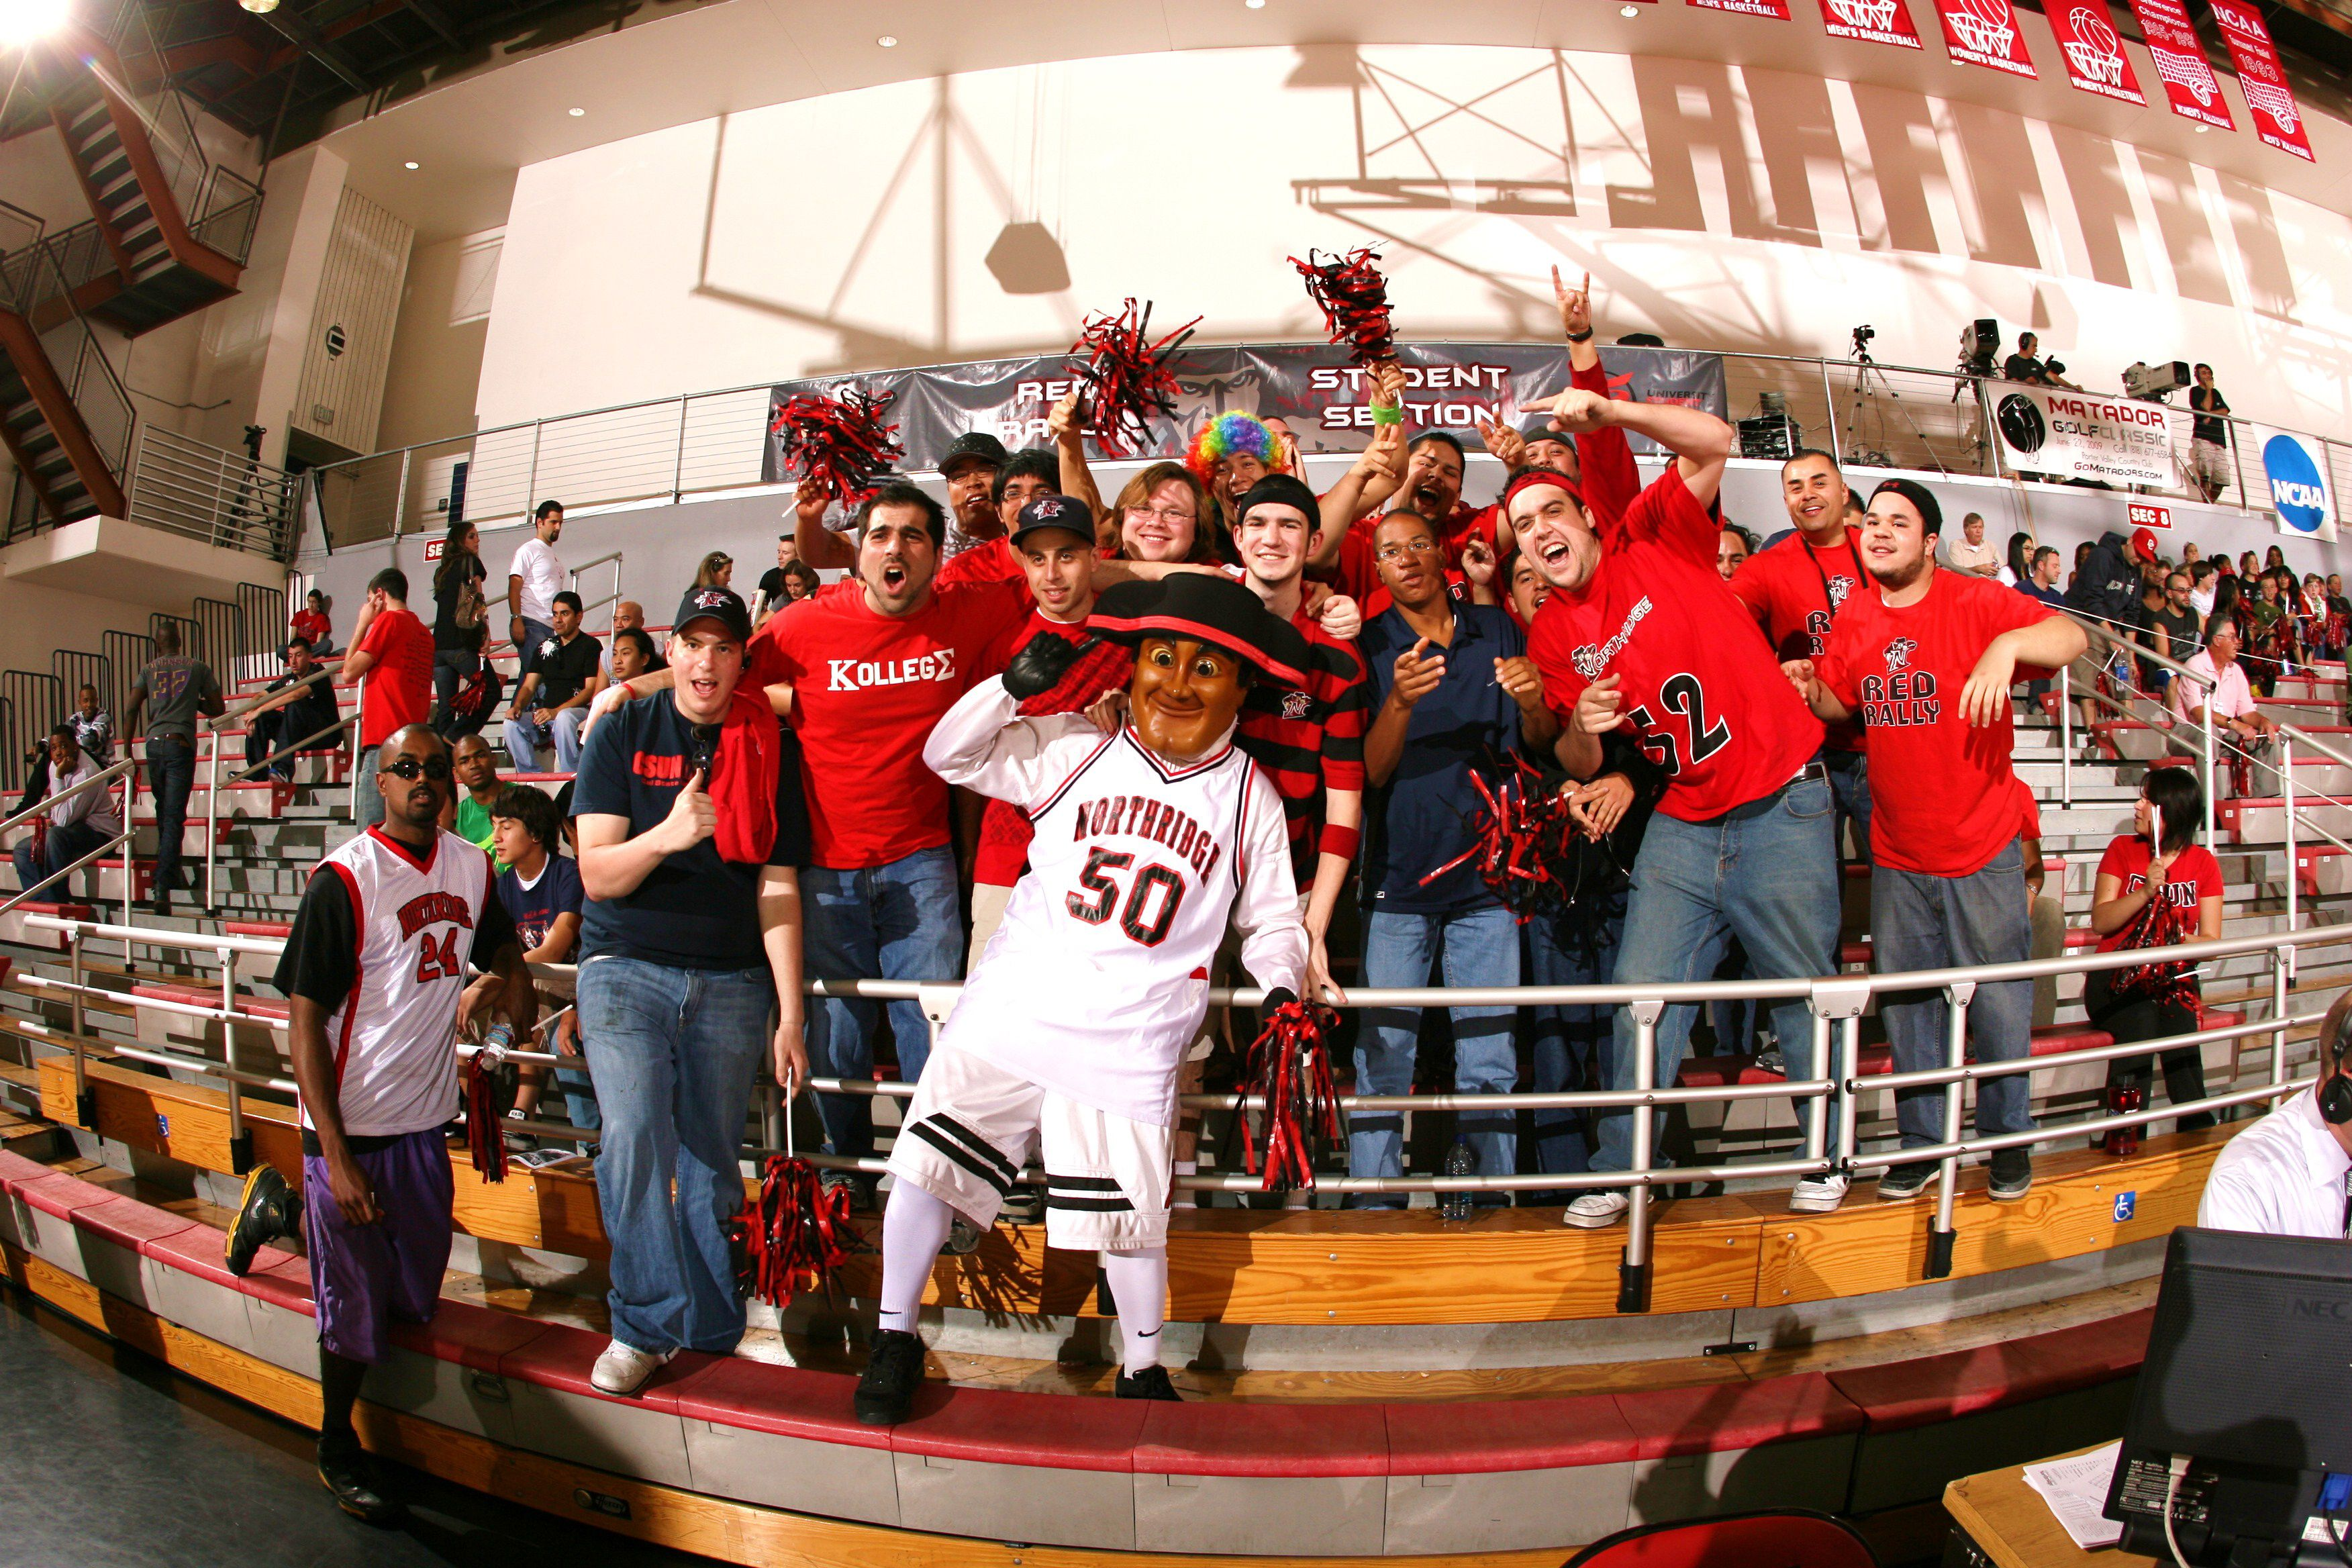 Matty the Matador rallies the crowd as CSUN's official mascot. Go Matadors!